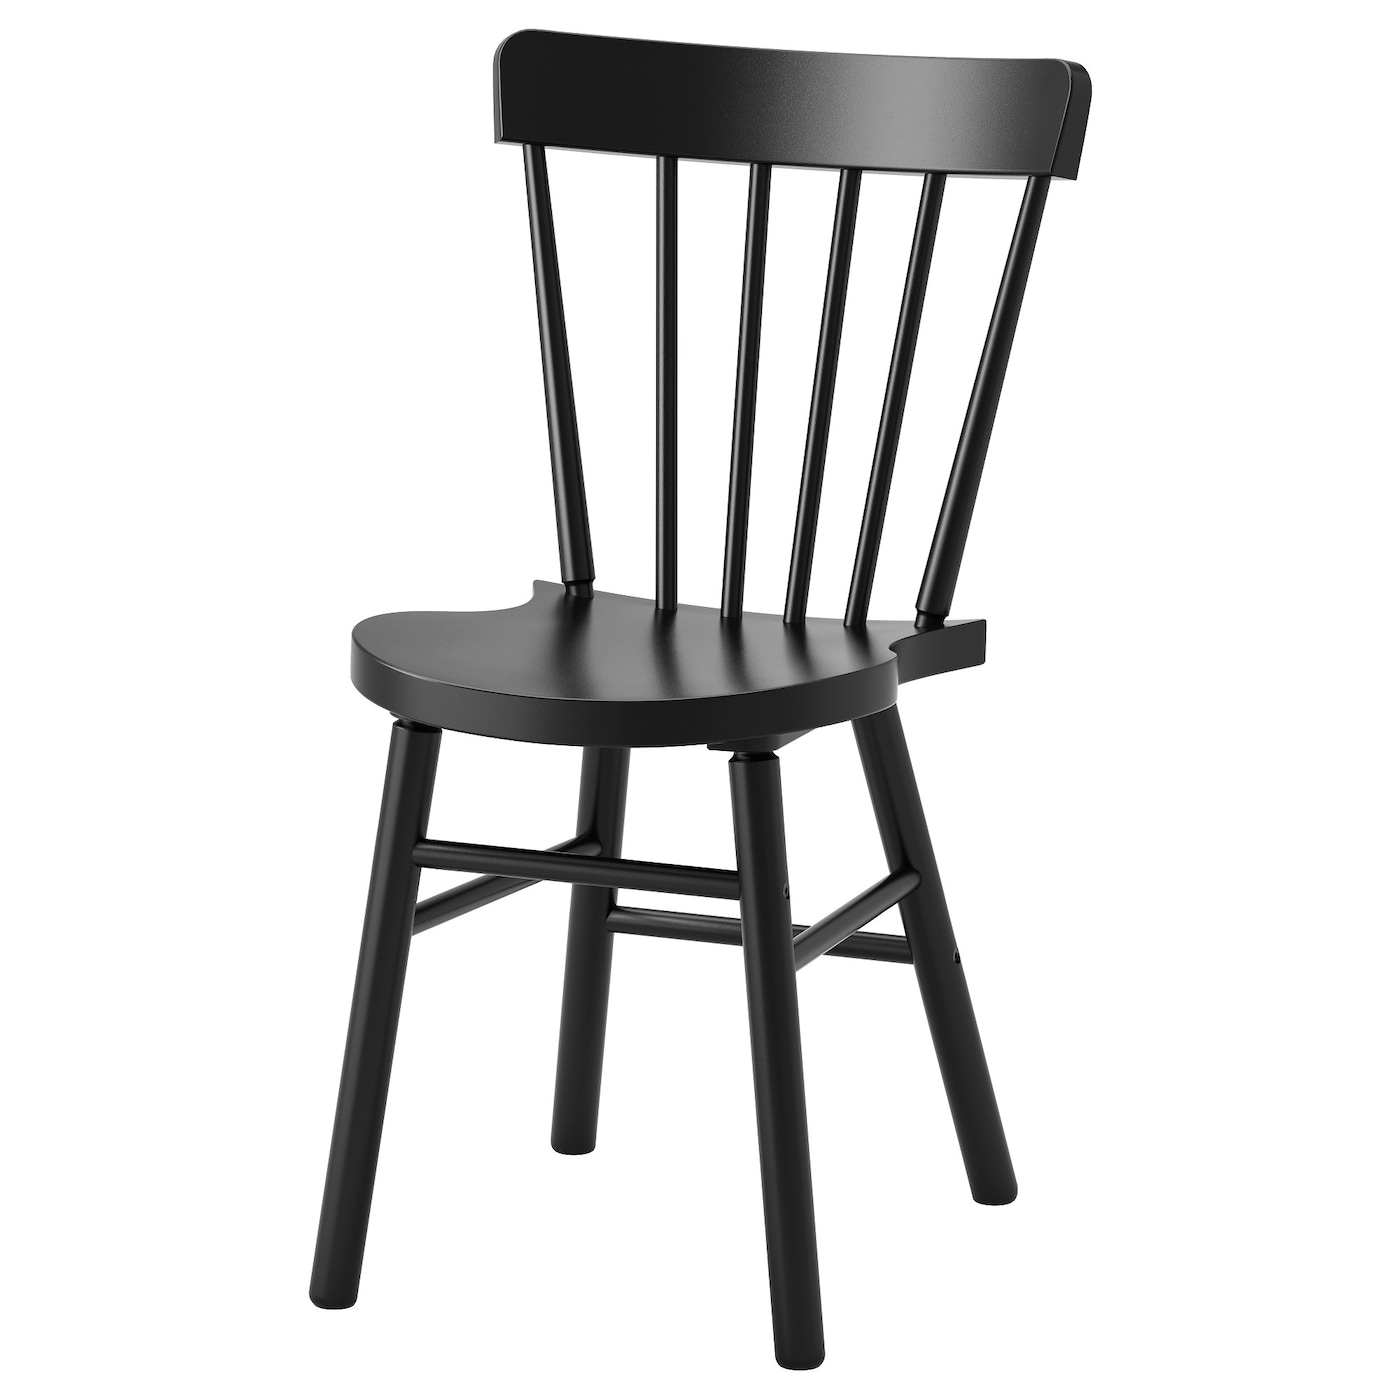 black furniture ikea. ikea norraryd chair you sit comfortably thanks to the chairu0027s shaped back and seat black furniture ikea